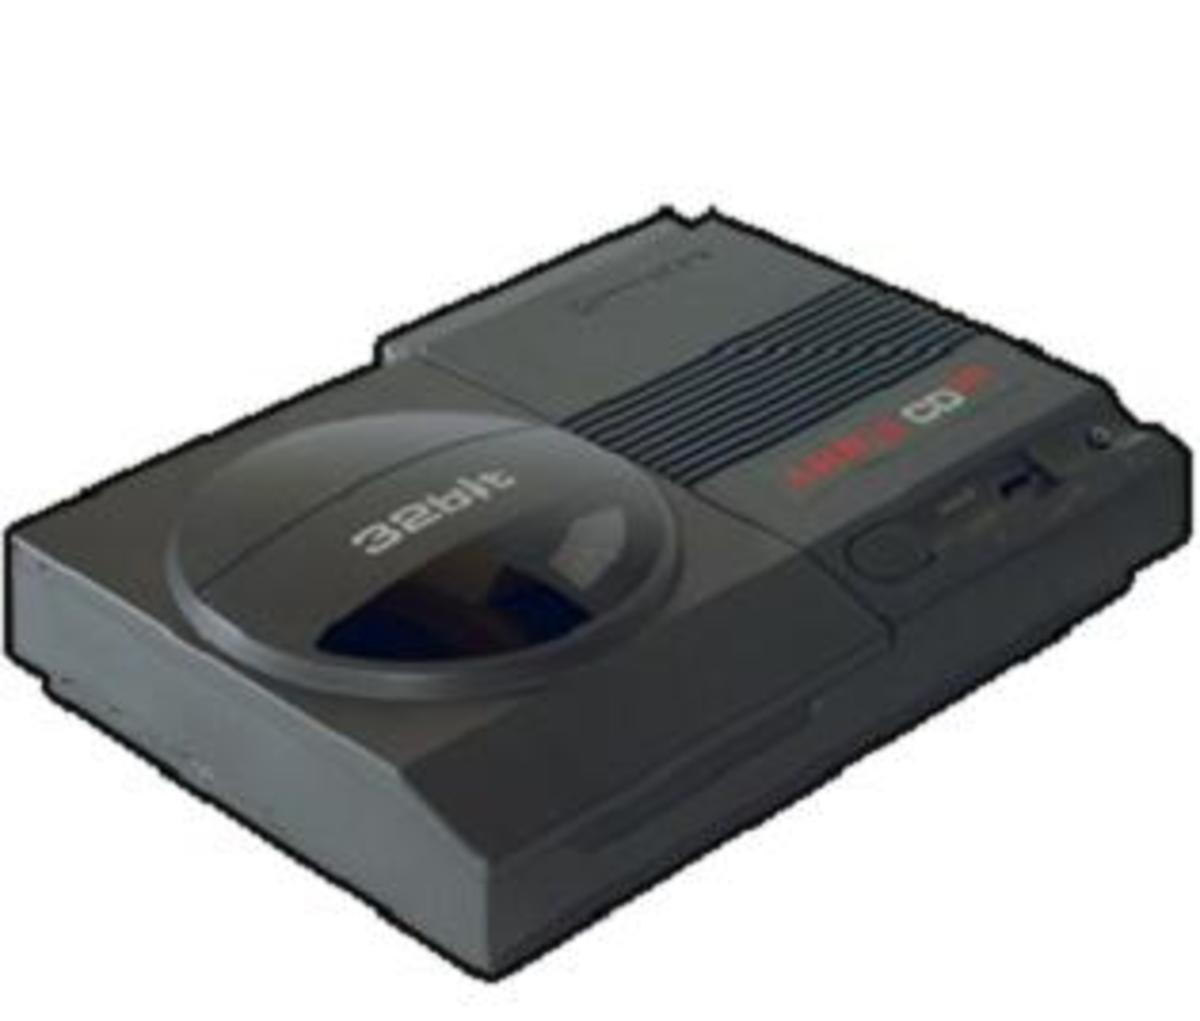 Commodore's attempt to enter the console market with the ill-fated Amiga CD32